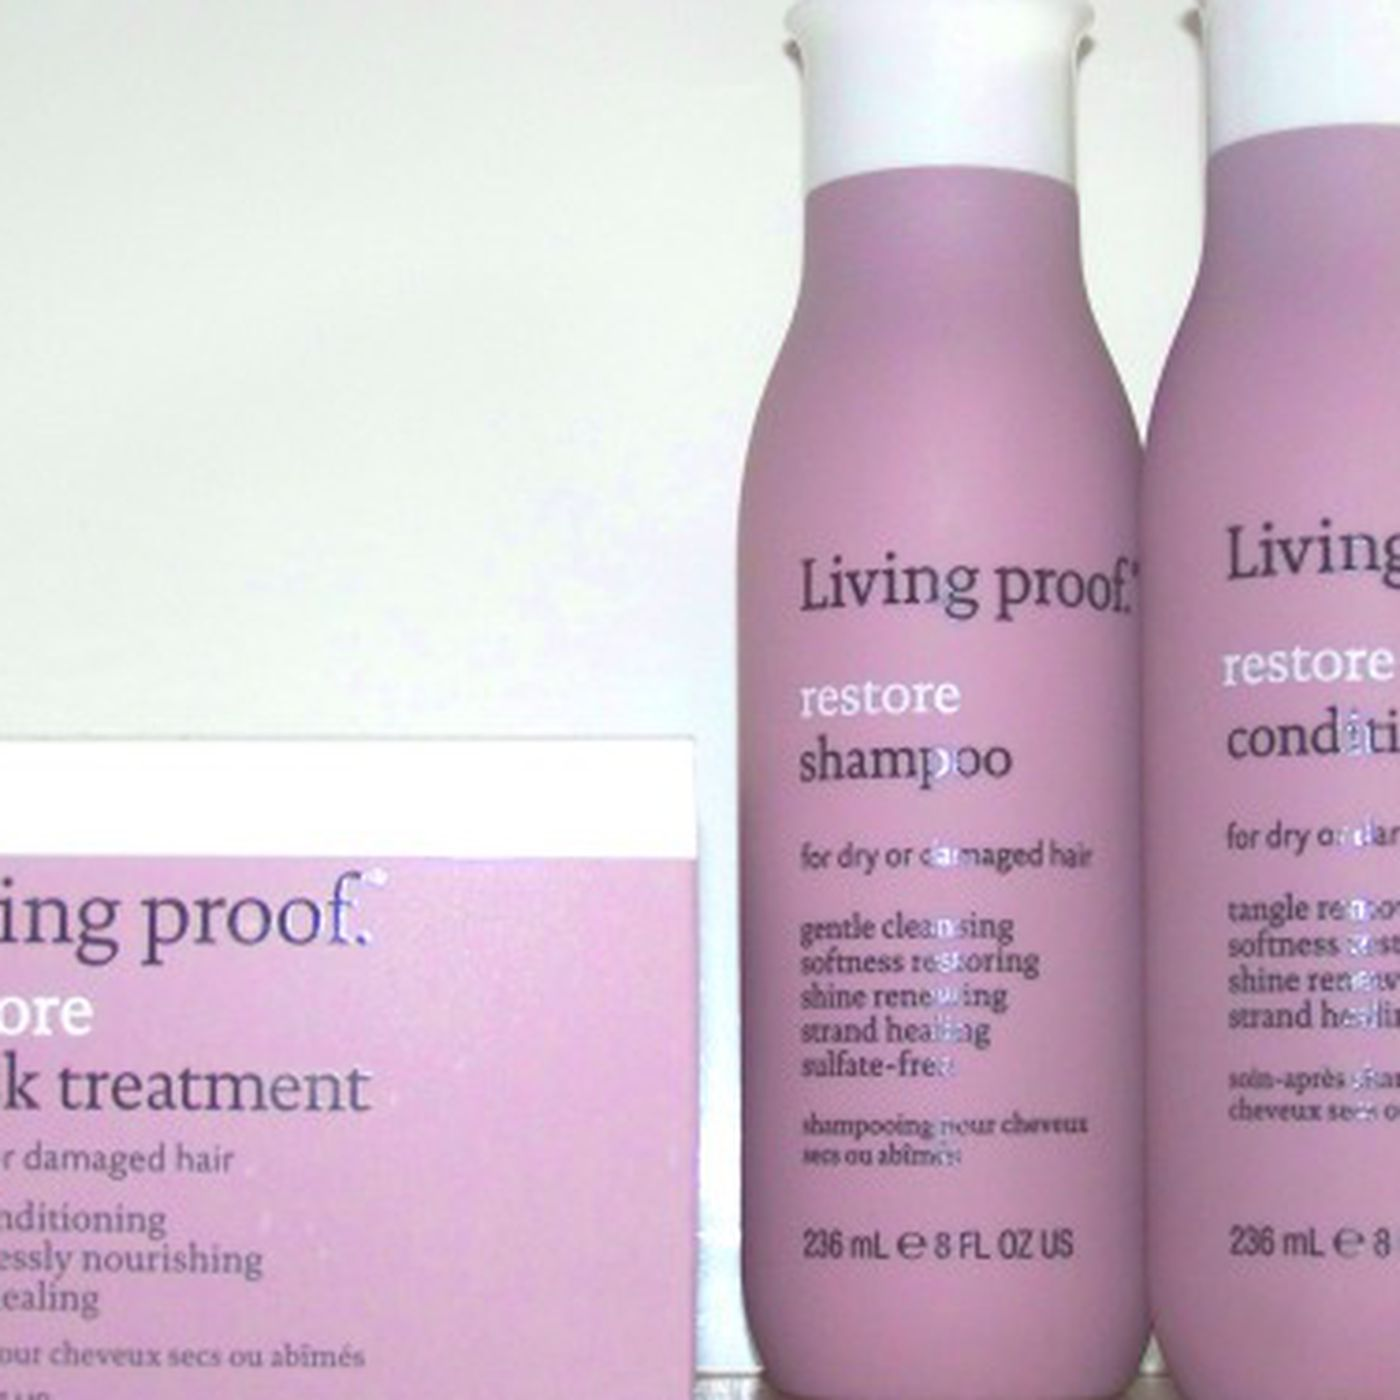 Living Proof Bottles Virginity (for Hair) with New 'Restore